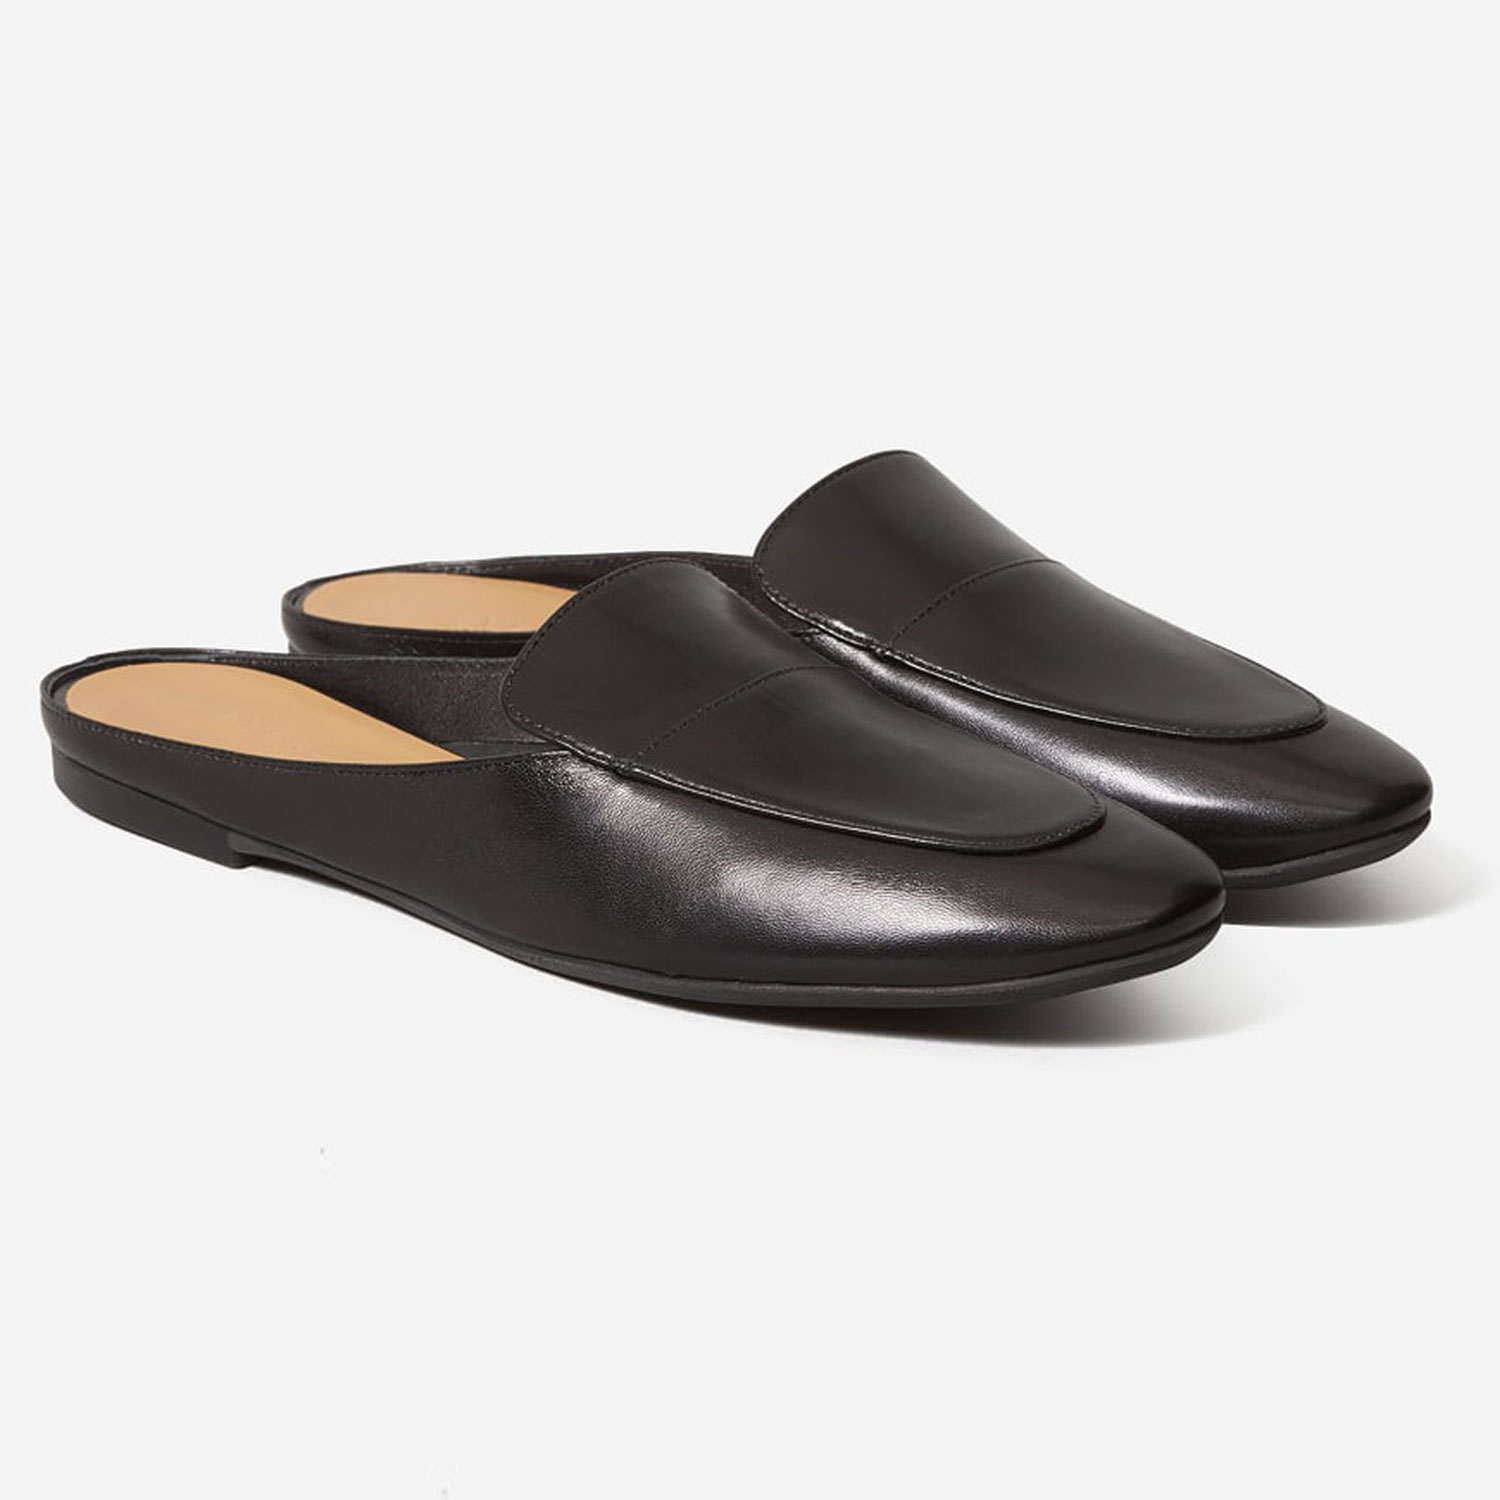 Everlane The Day Loafer Mule in Black